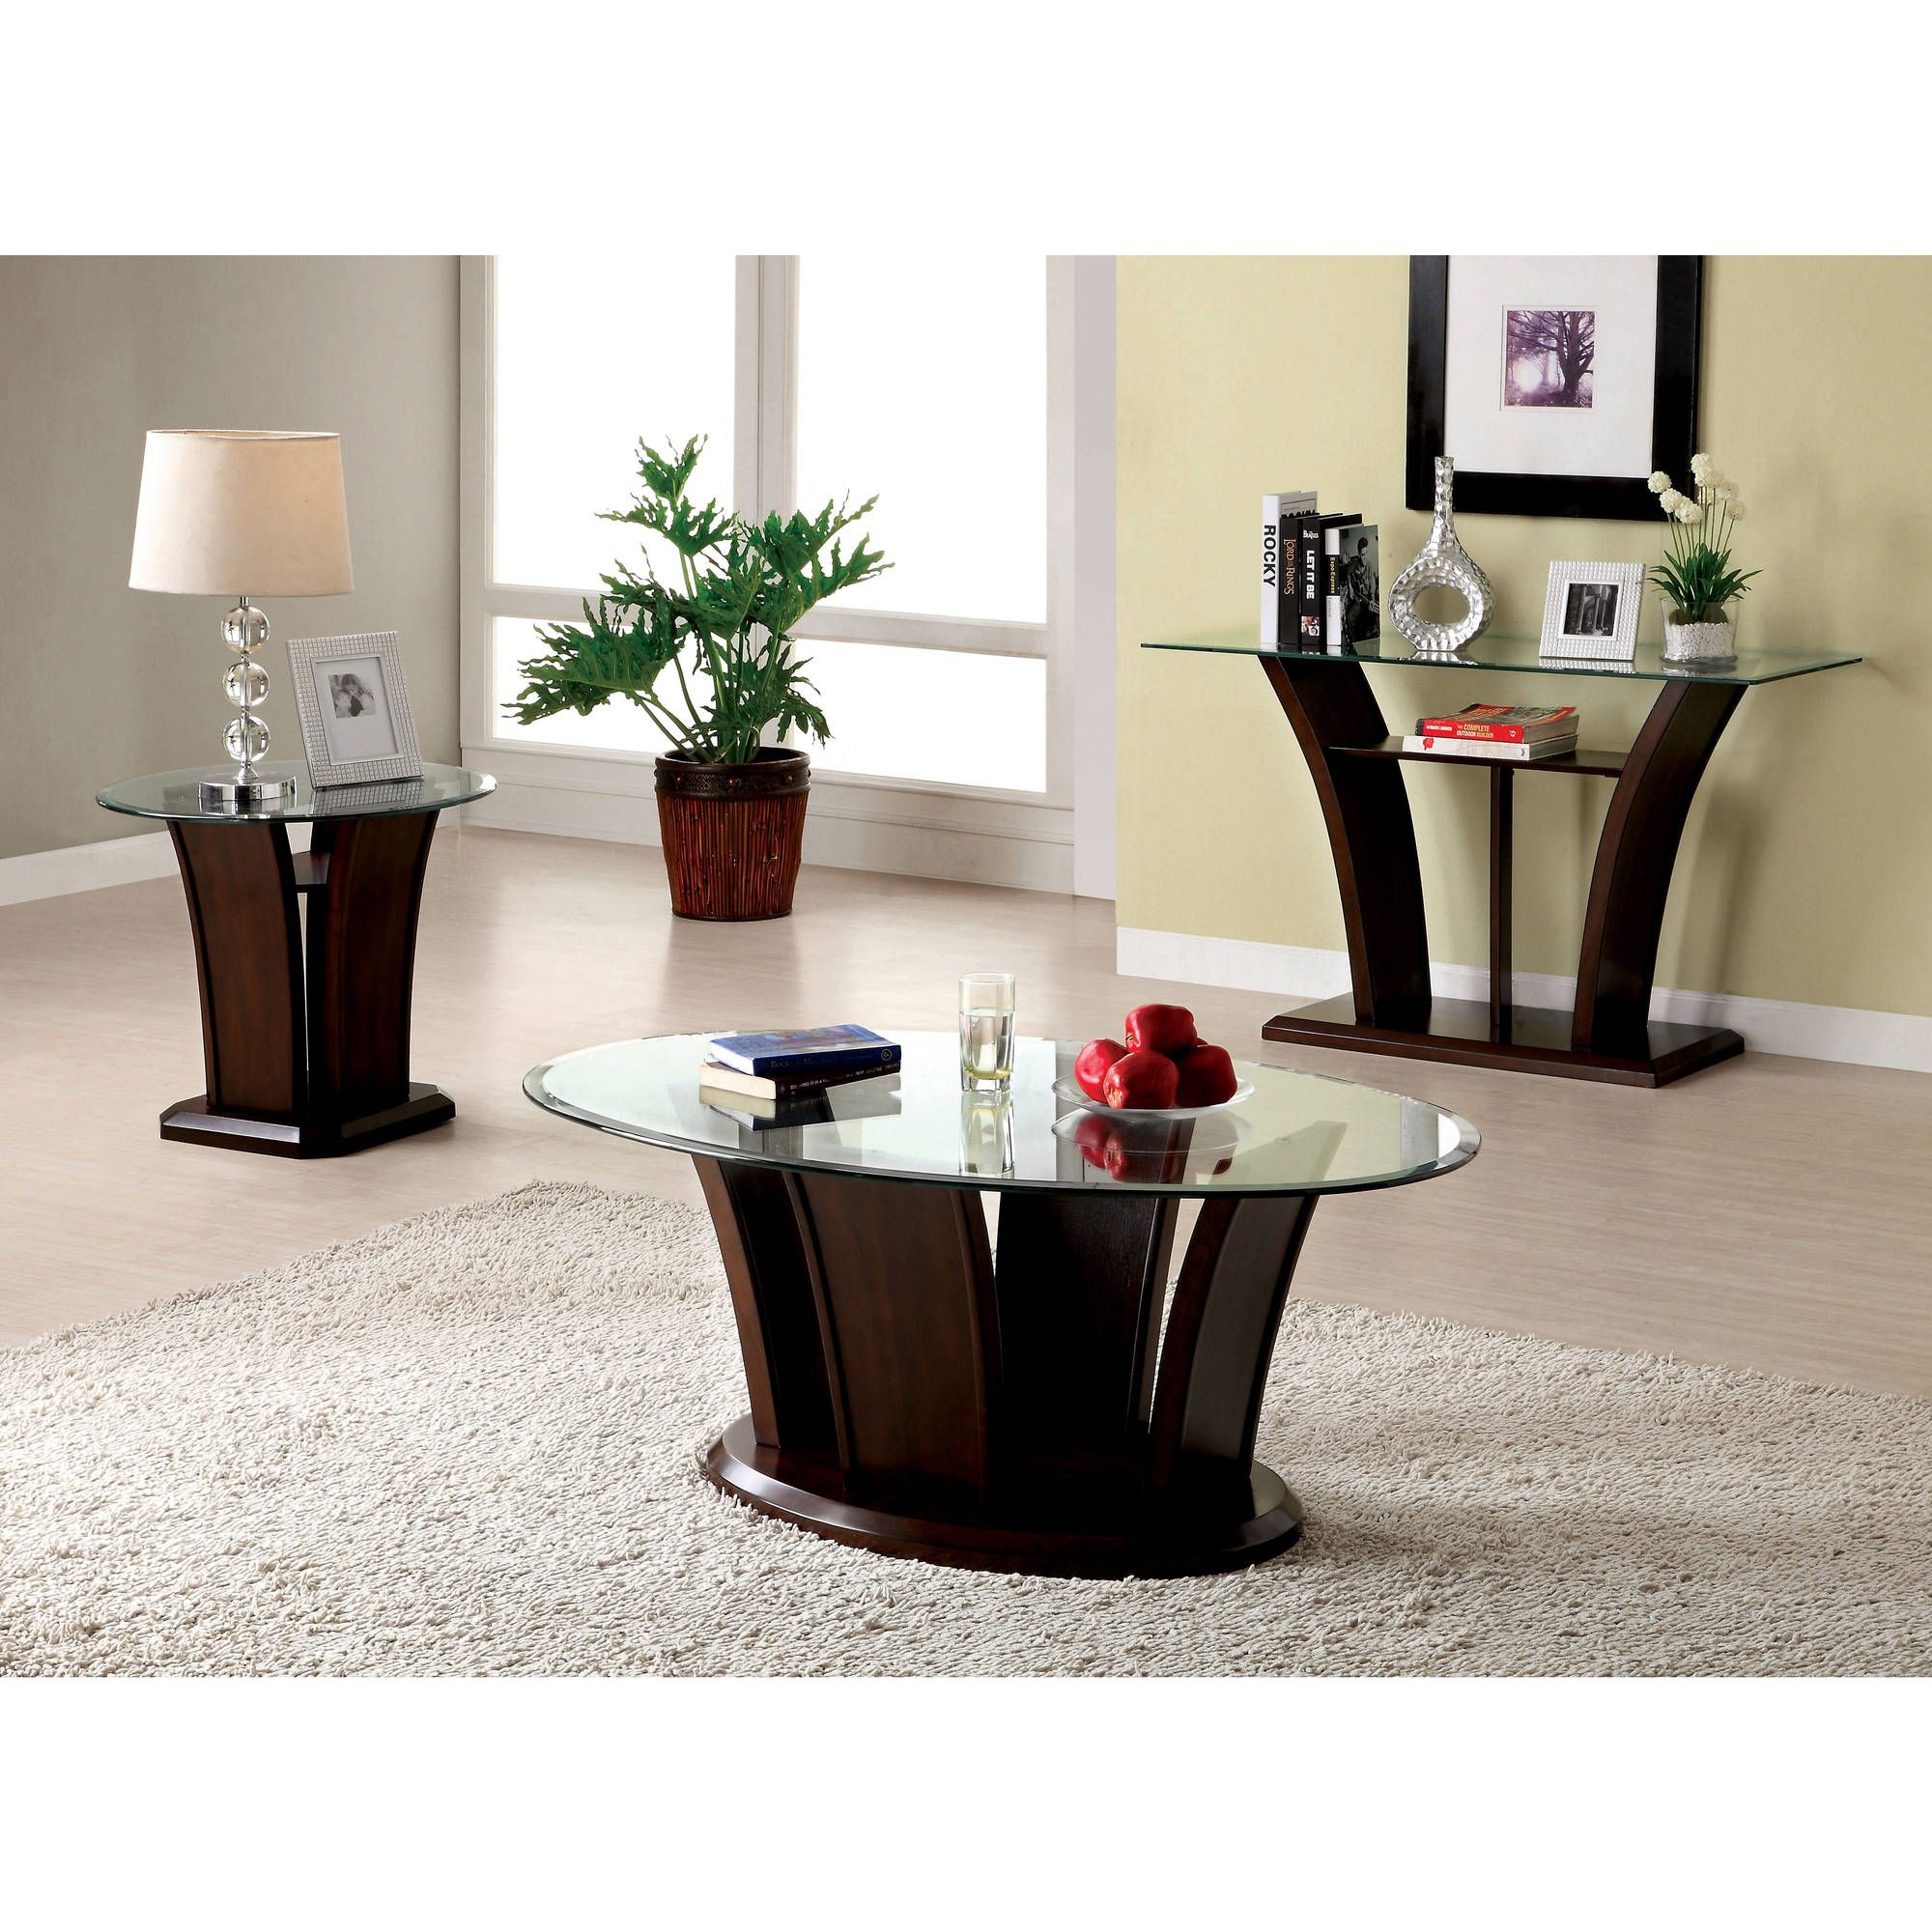 Furniture Of America Panna Contemporary 3 Piece Coffee Table Set, Multiple  Colors